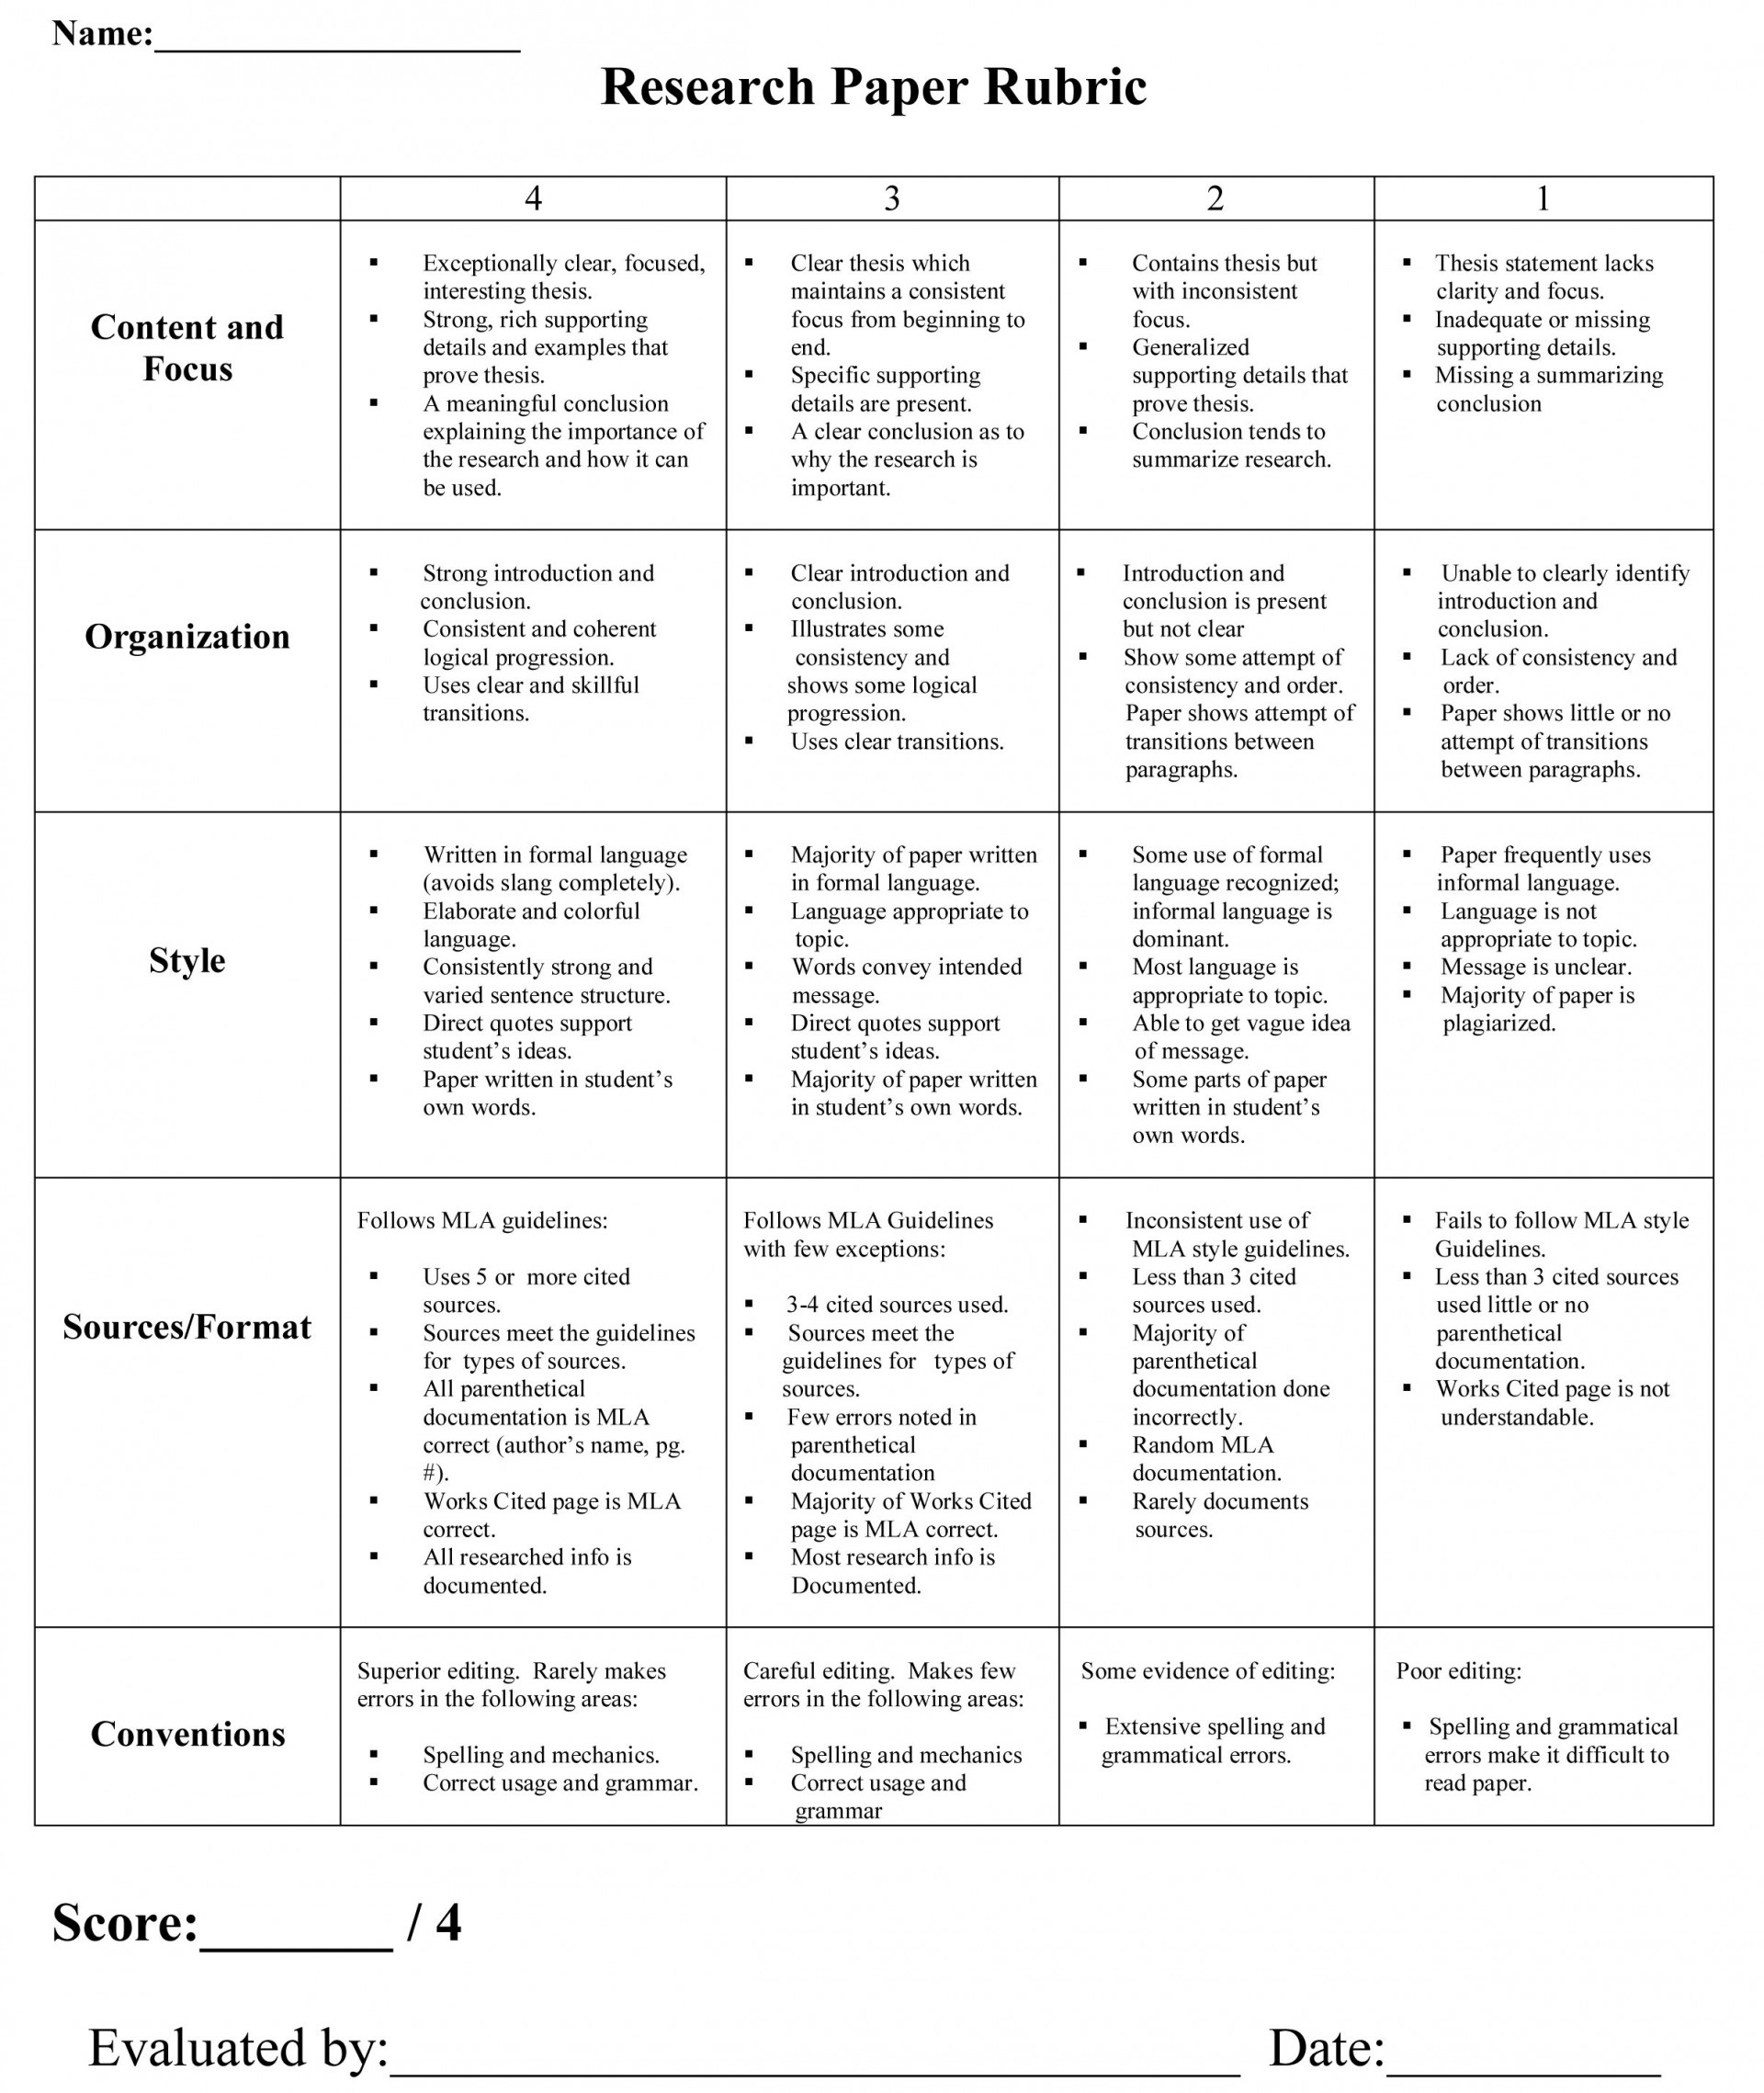 005 Research Paper Argumentative Outstanding Rubric 1920